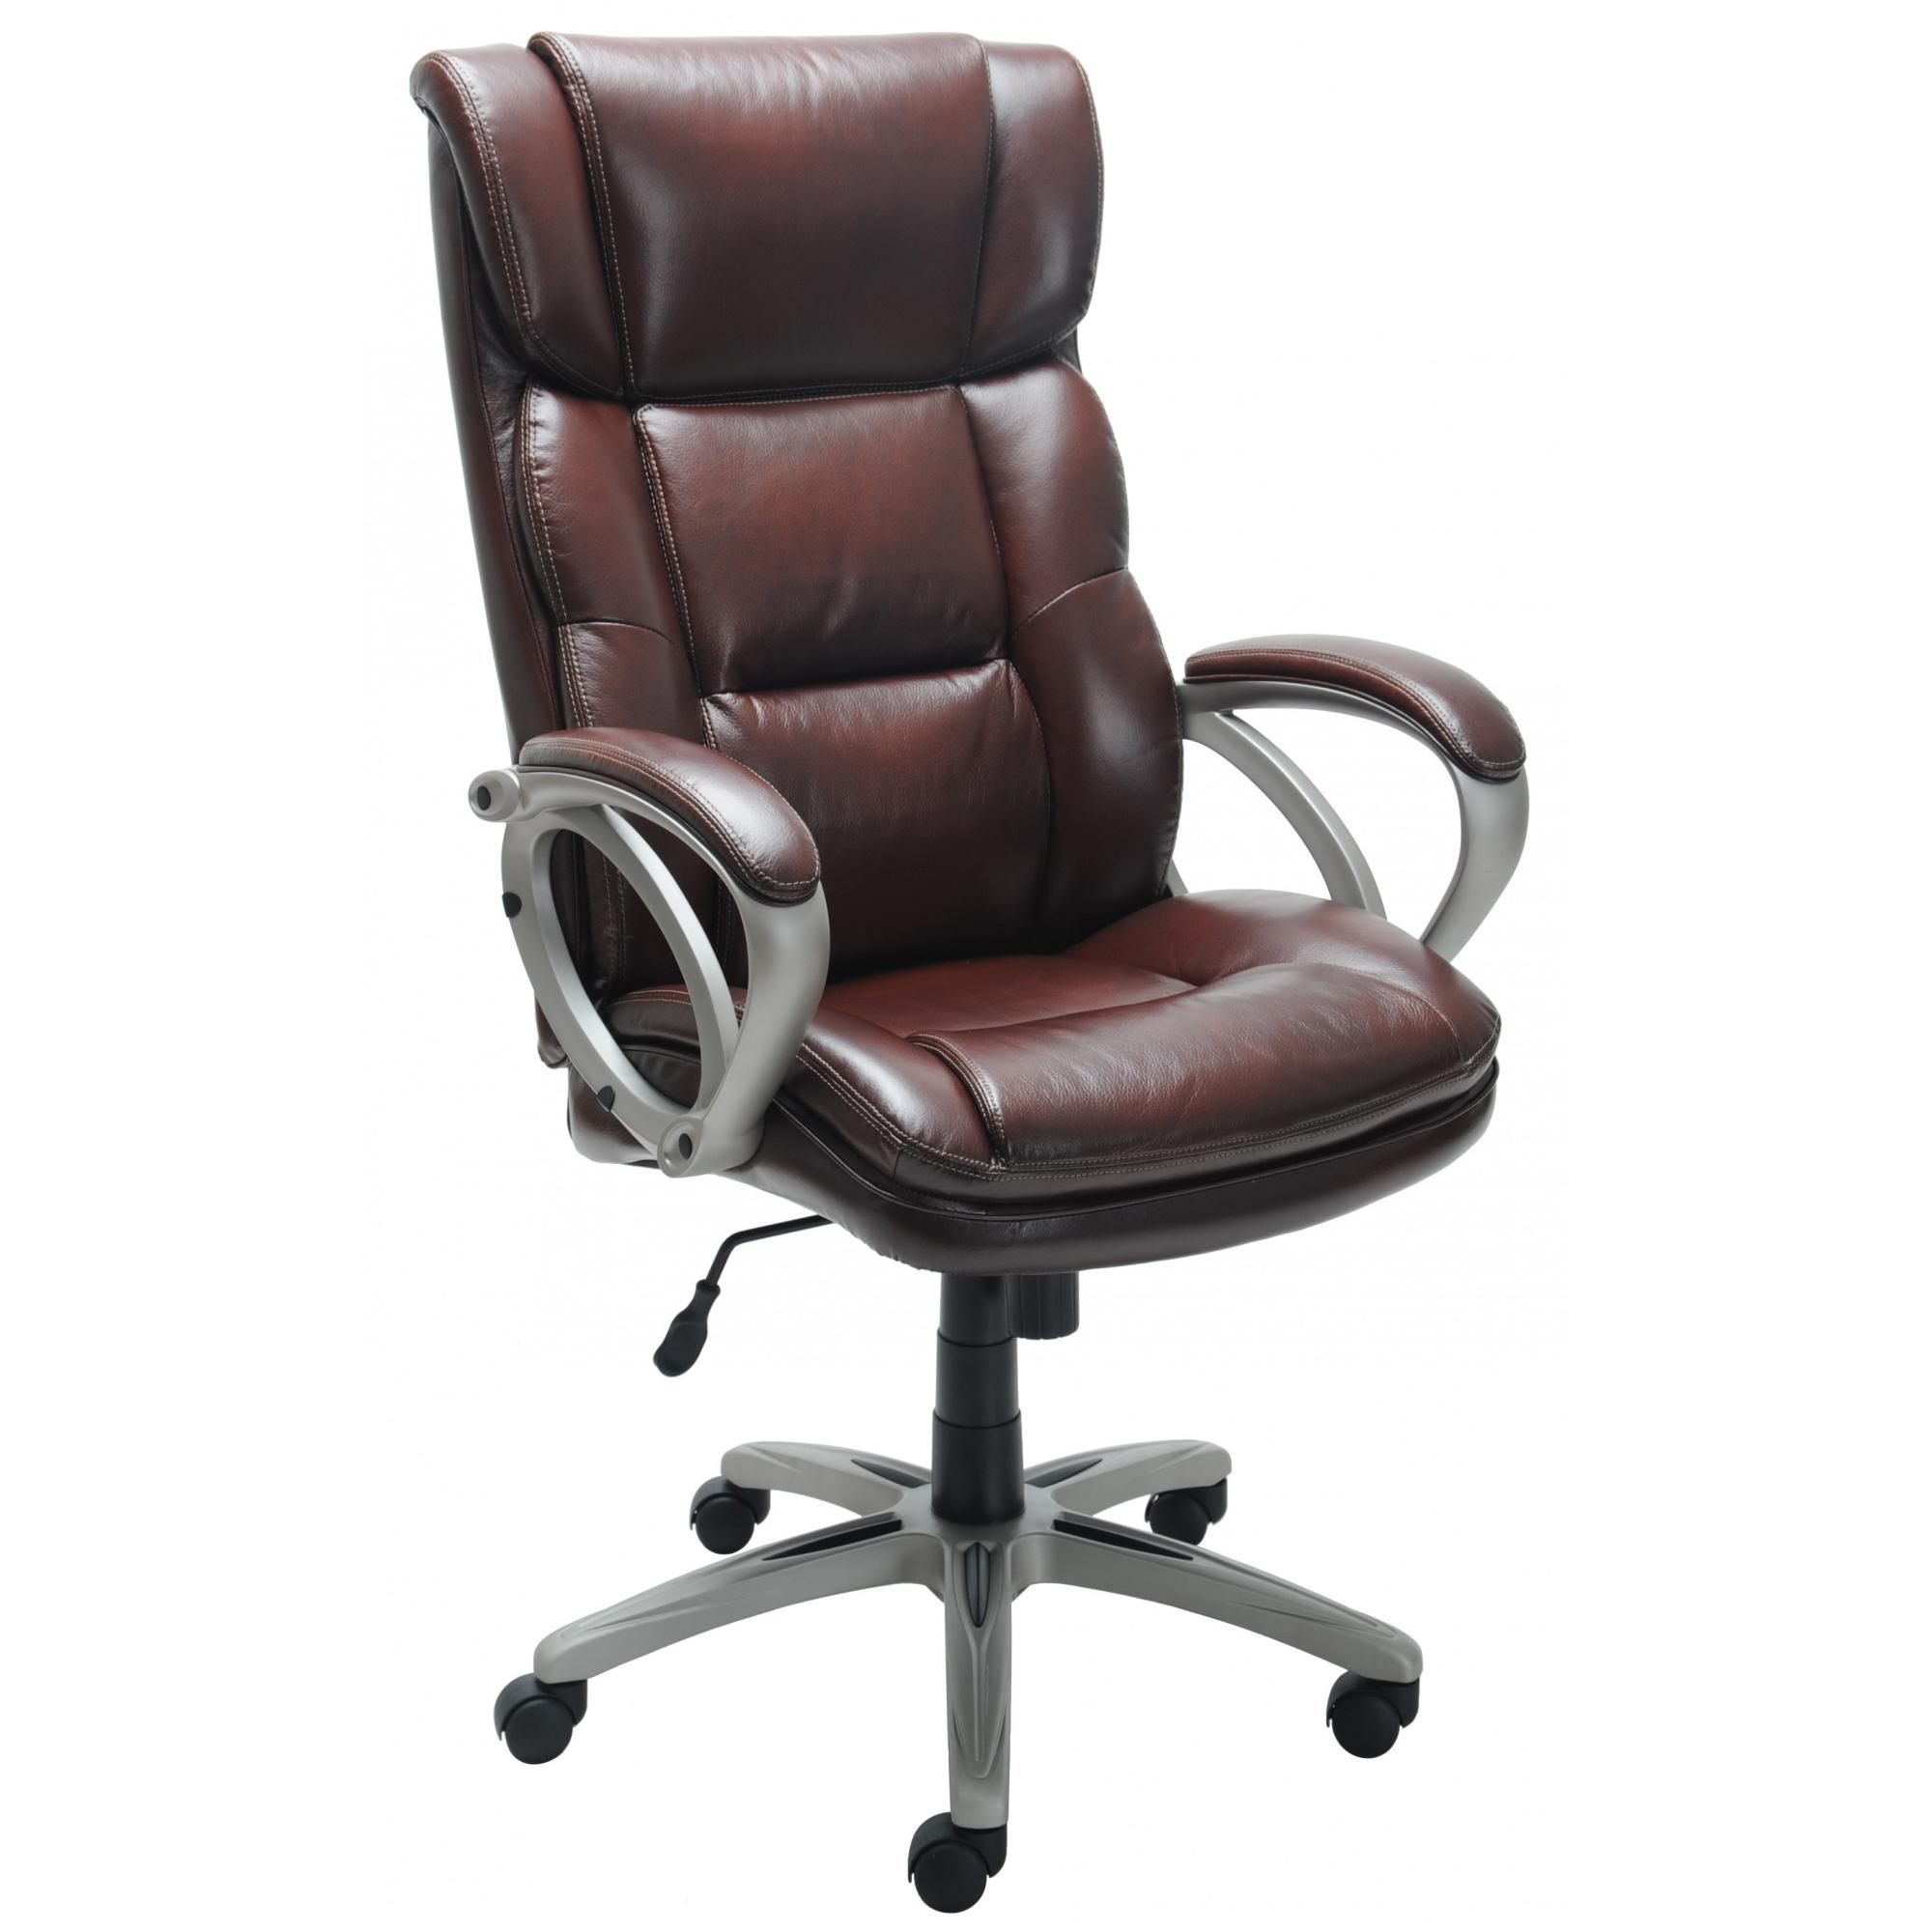 broyhill big and tall executive chair. Broyhill Bonded Leather Executive Chair Big And Tall O